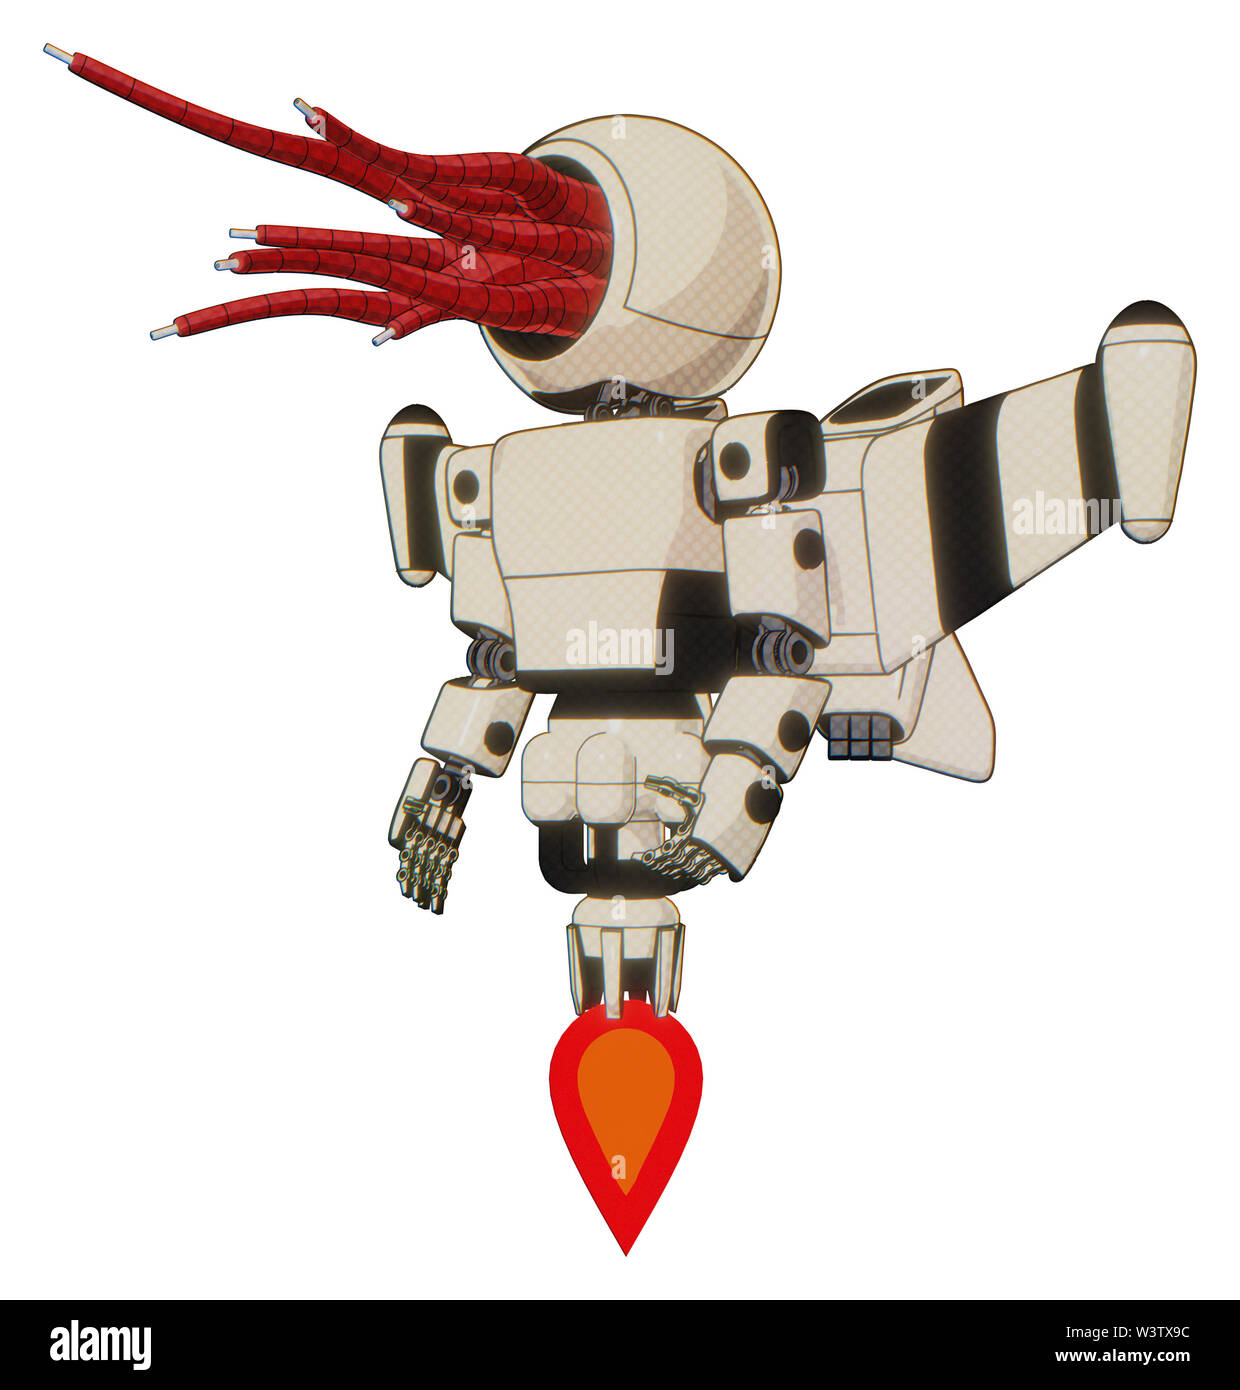 Automaton containing elements: bright red jellyfish tentacles fiber optic design, light chest exoshielding, prototype exoplate chest, stellar jet wing - Stock Image